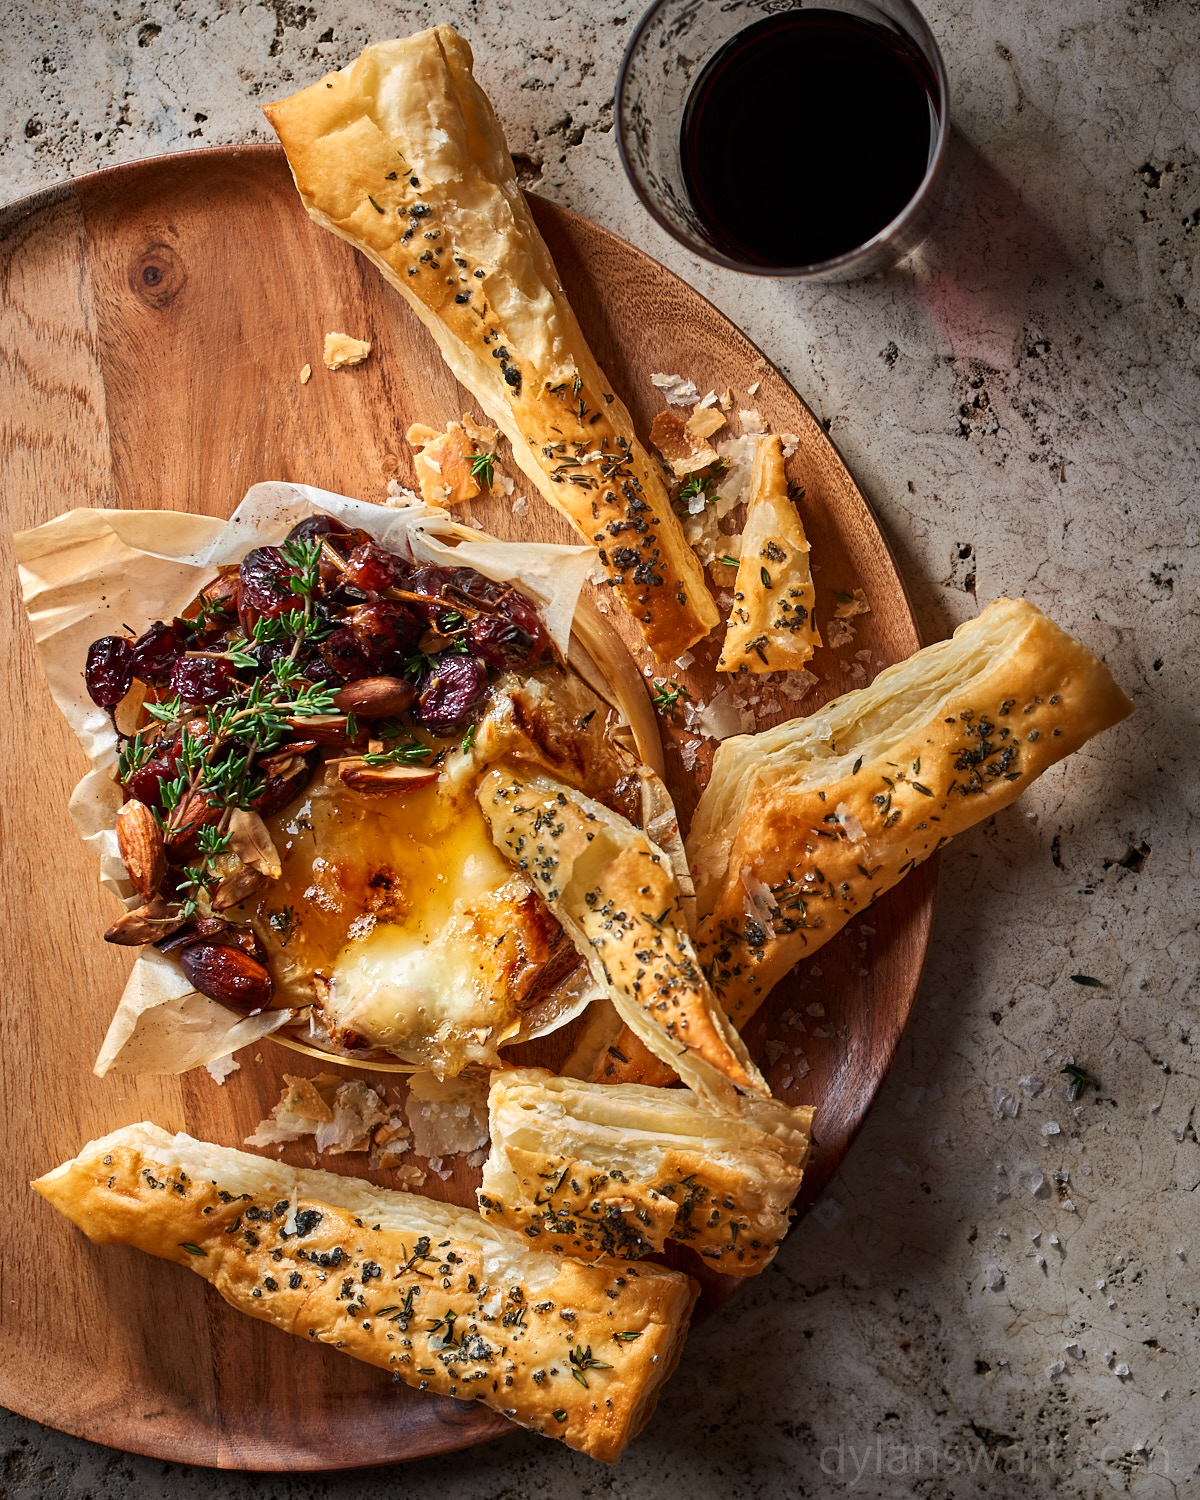 Baked Camembert with Honey-Roasted Grapes, Almonds and Puff-Pasty Shards